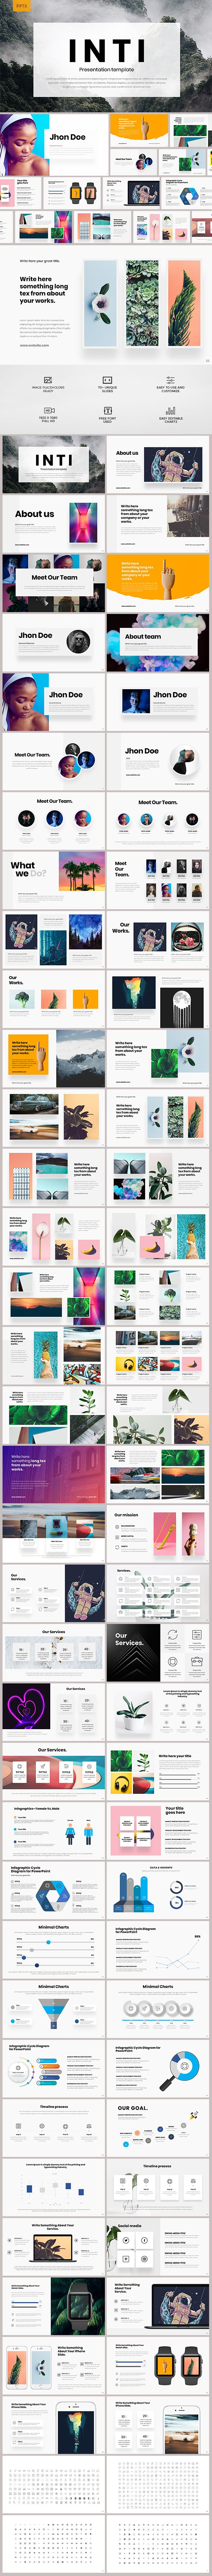 Inti powerpoint template powerpoint templates presentation inti powerpoint template powerpoint templates presentation templates toneelgroepblik Gallery